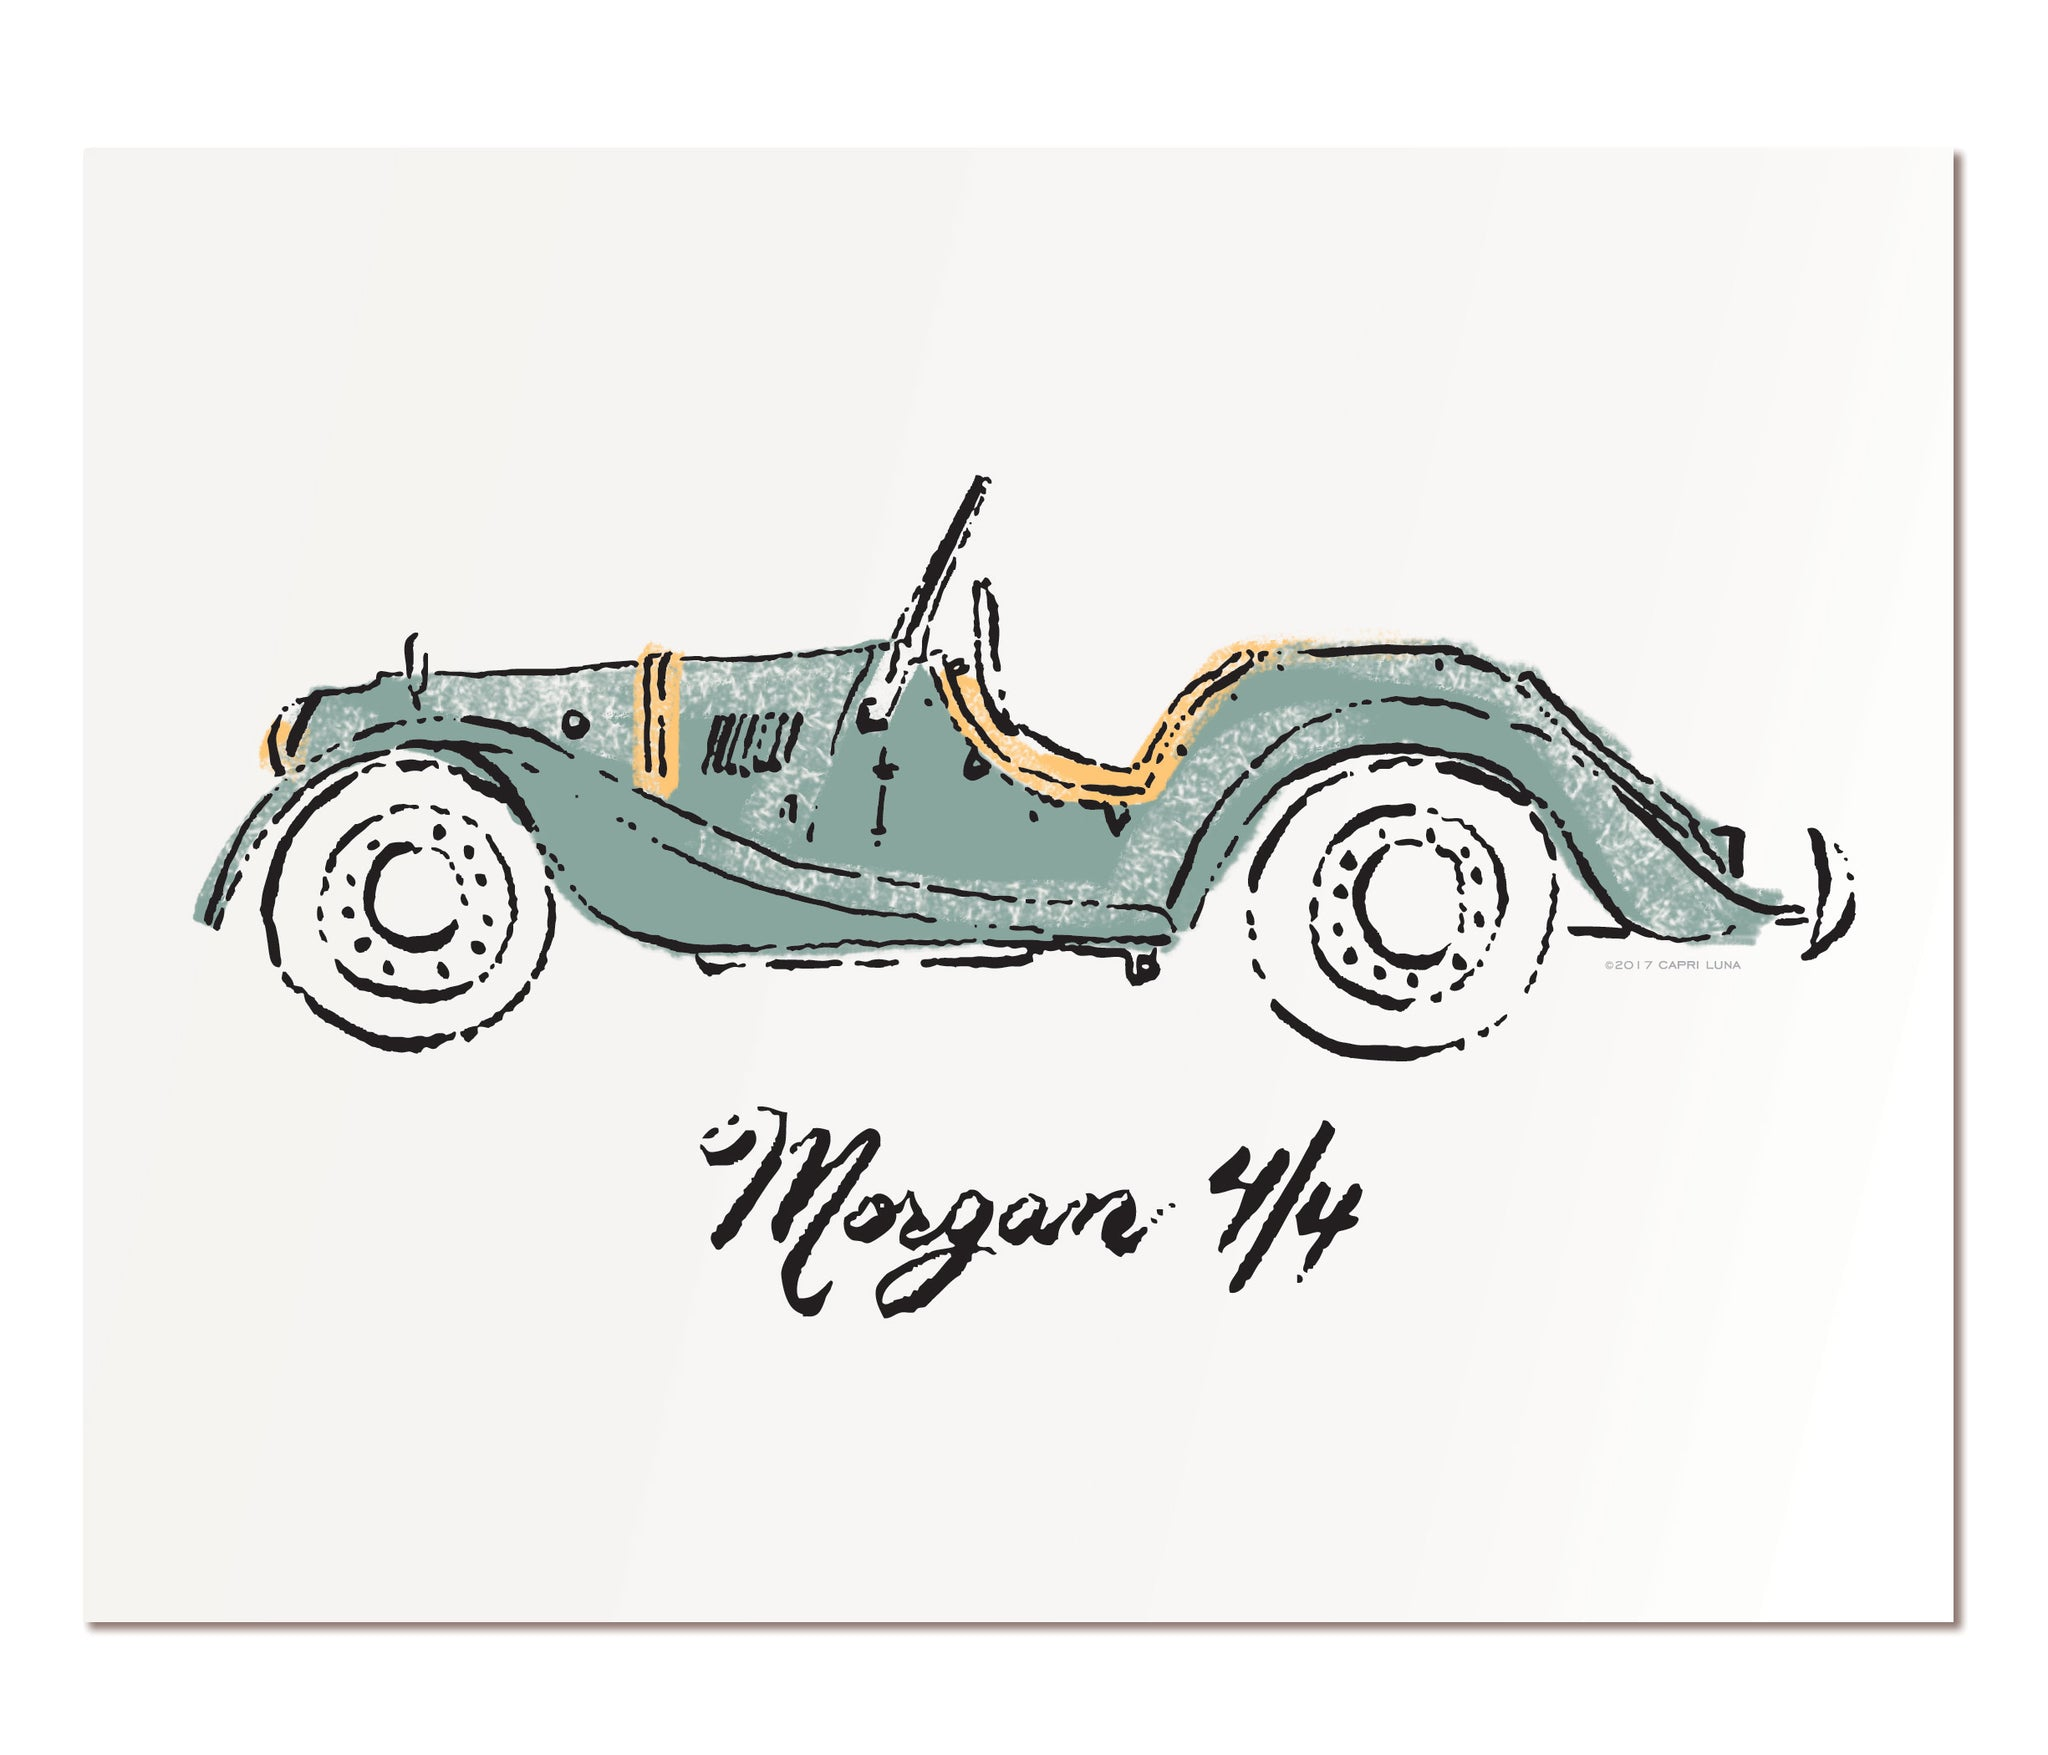 "Morgan 4/4 - 11x14"" art print"